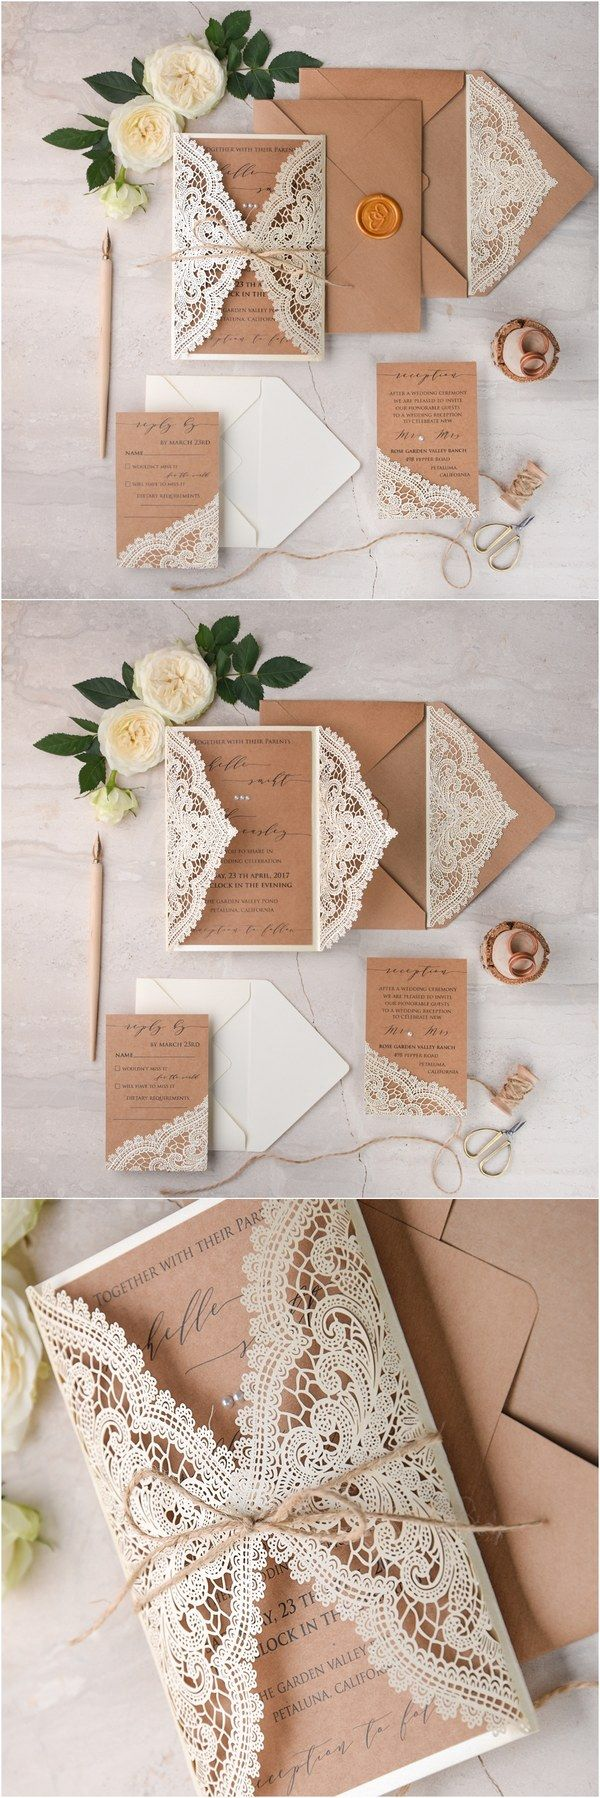 Ivory kraft paper laser cut lace rustic wedding invitations 02lCNz / http://www.deerpearlflowers.com/laser-cut-wedding-invitations/